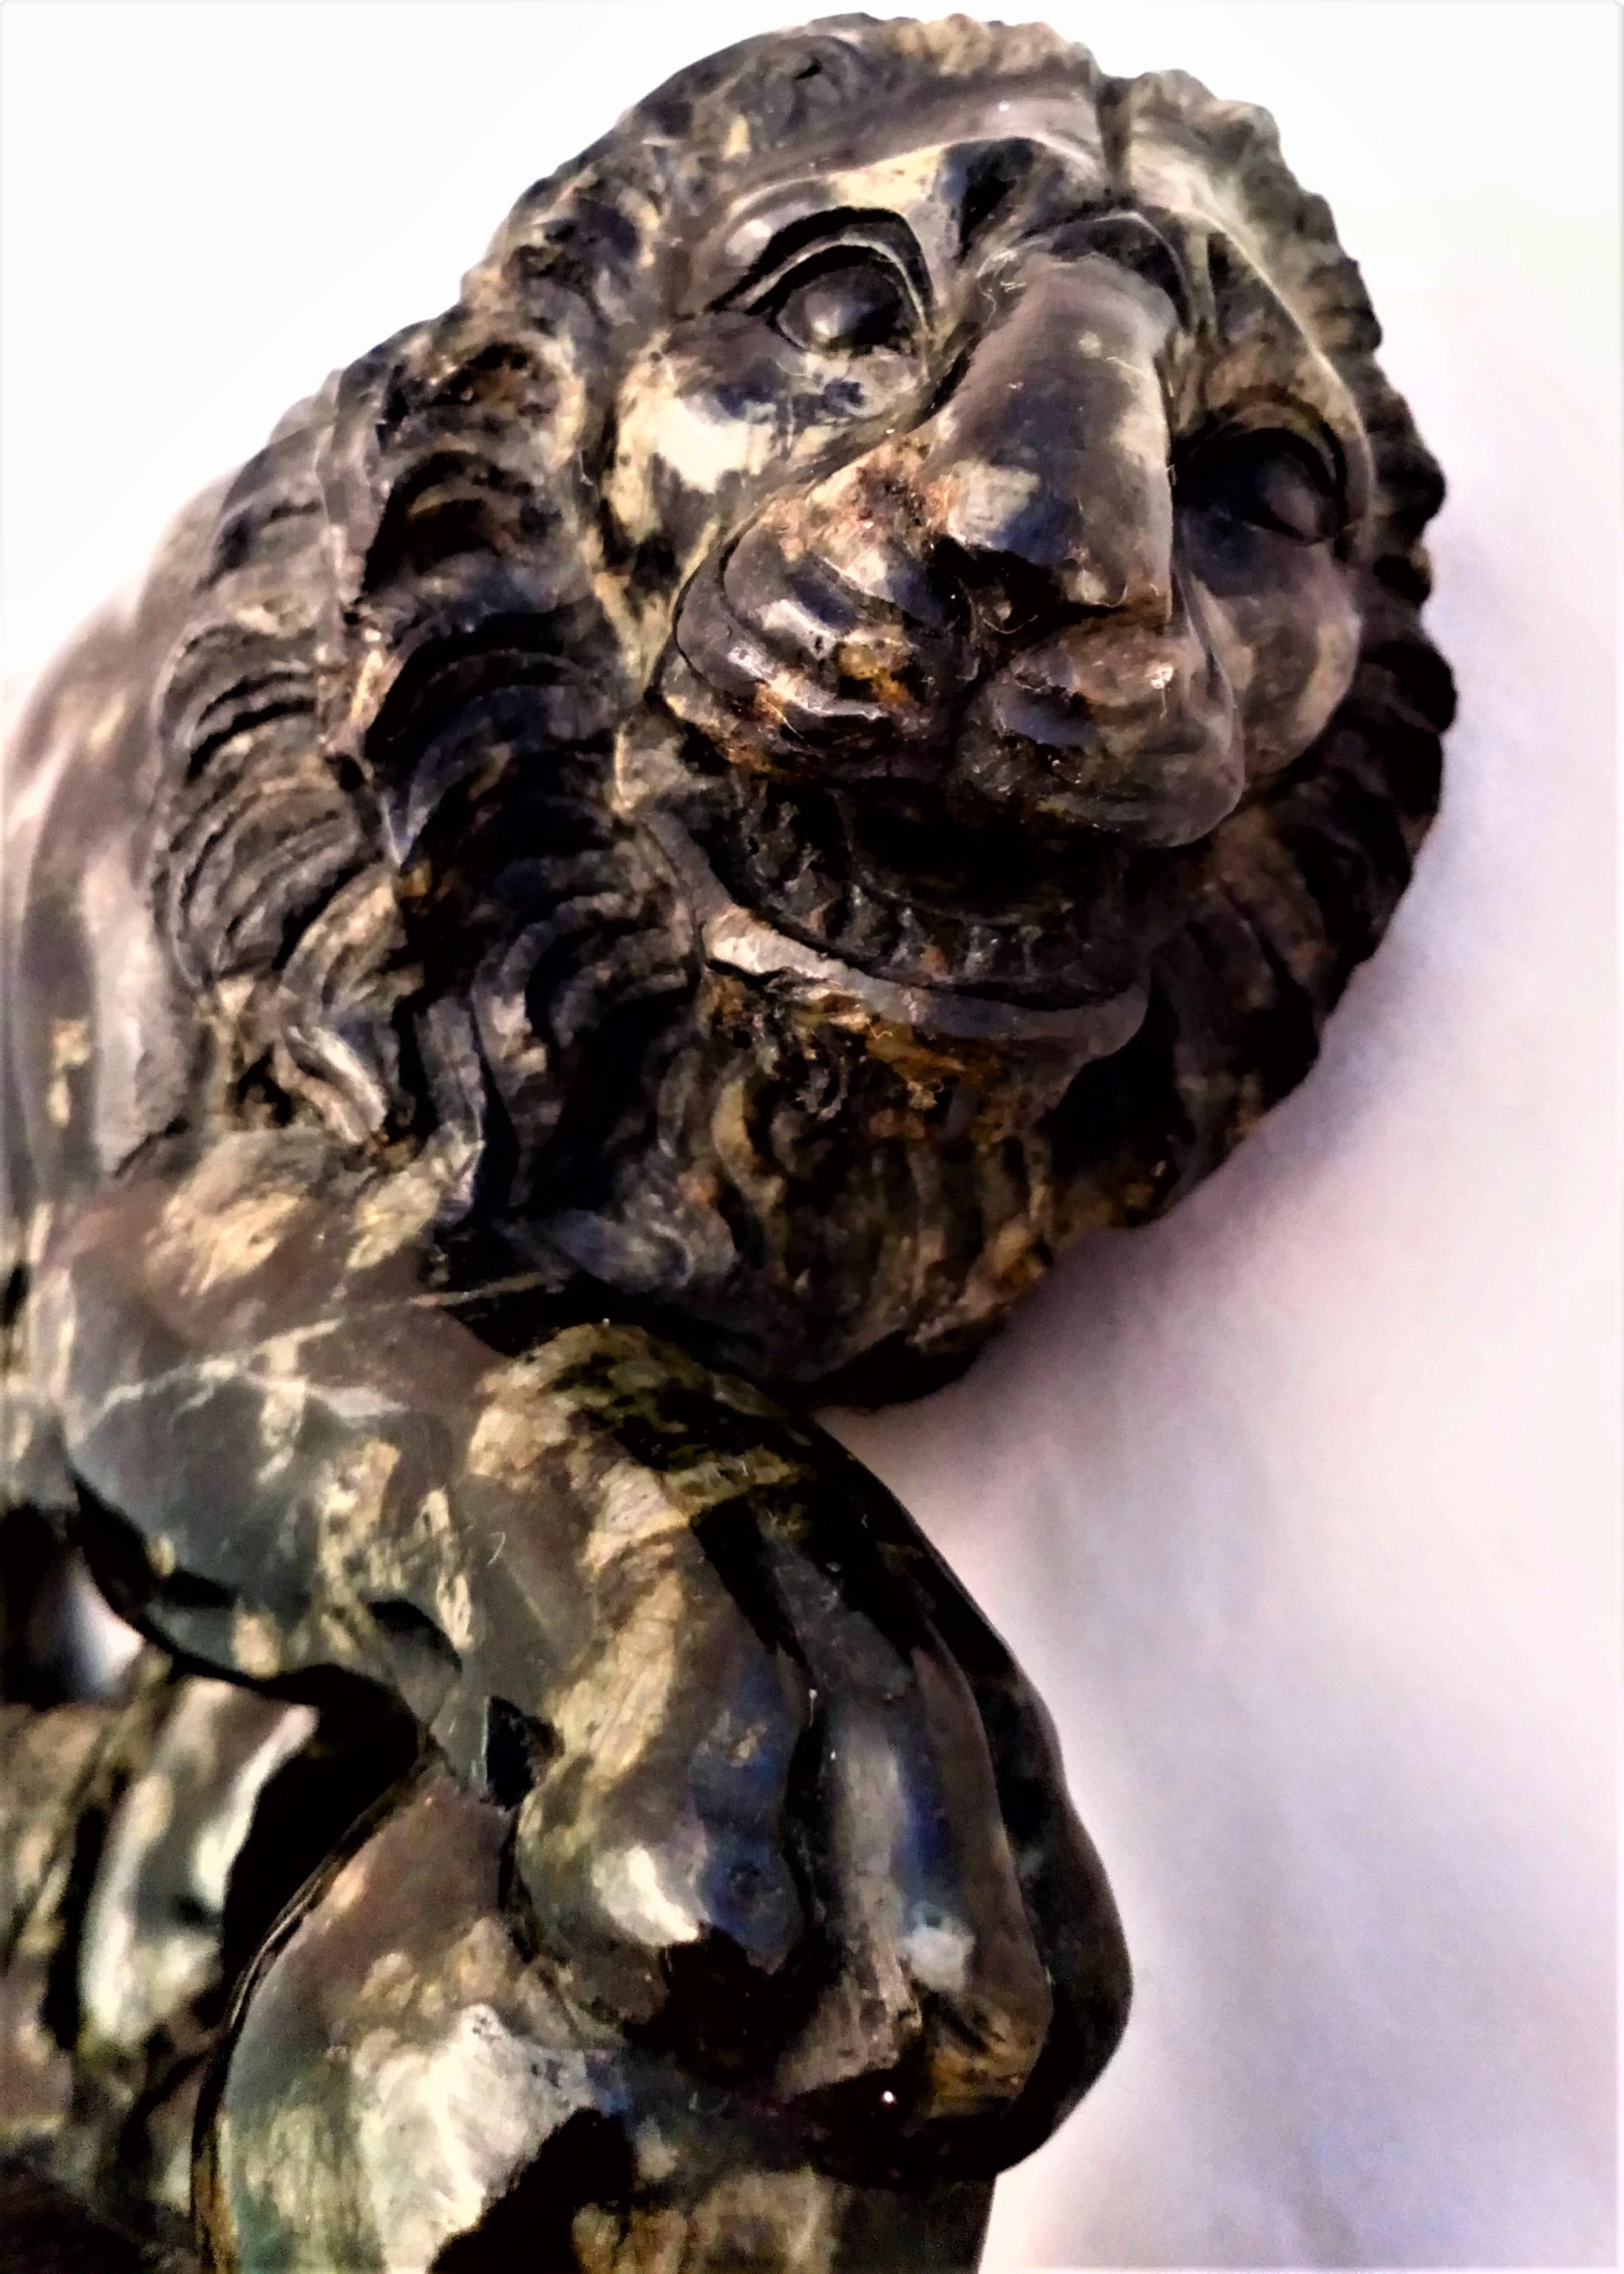 Antique Grand Tour Souvenir Green Serpentine Marble Sculpture Small Medici Lion 19th Century 15 cm Long